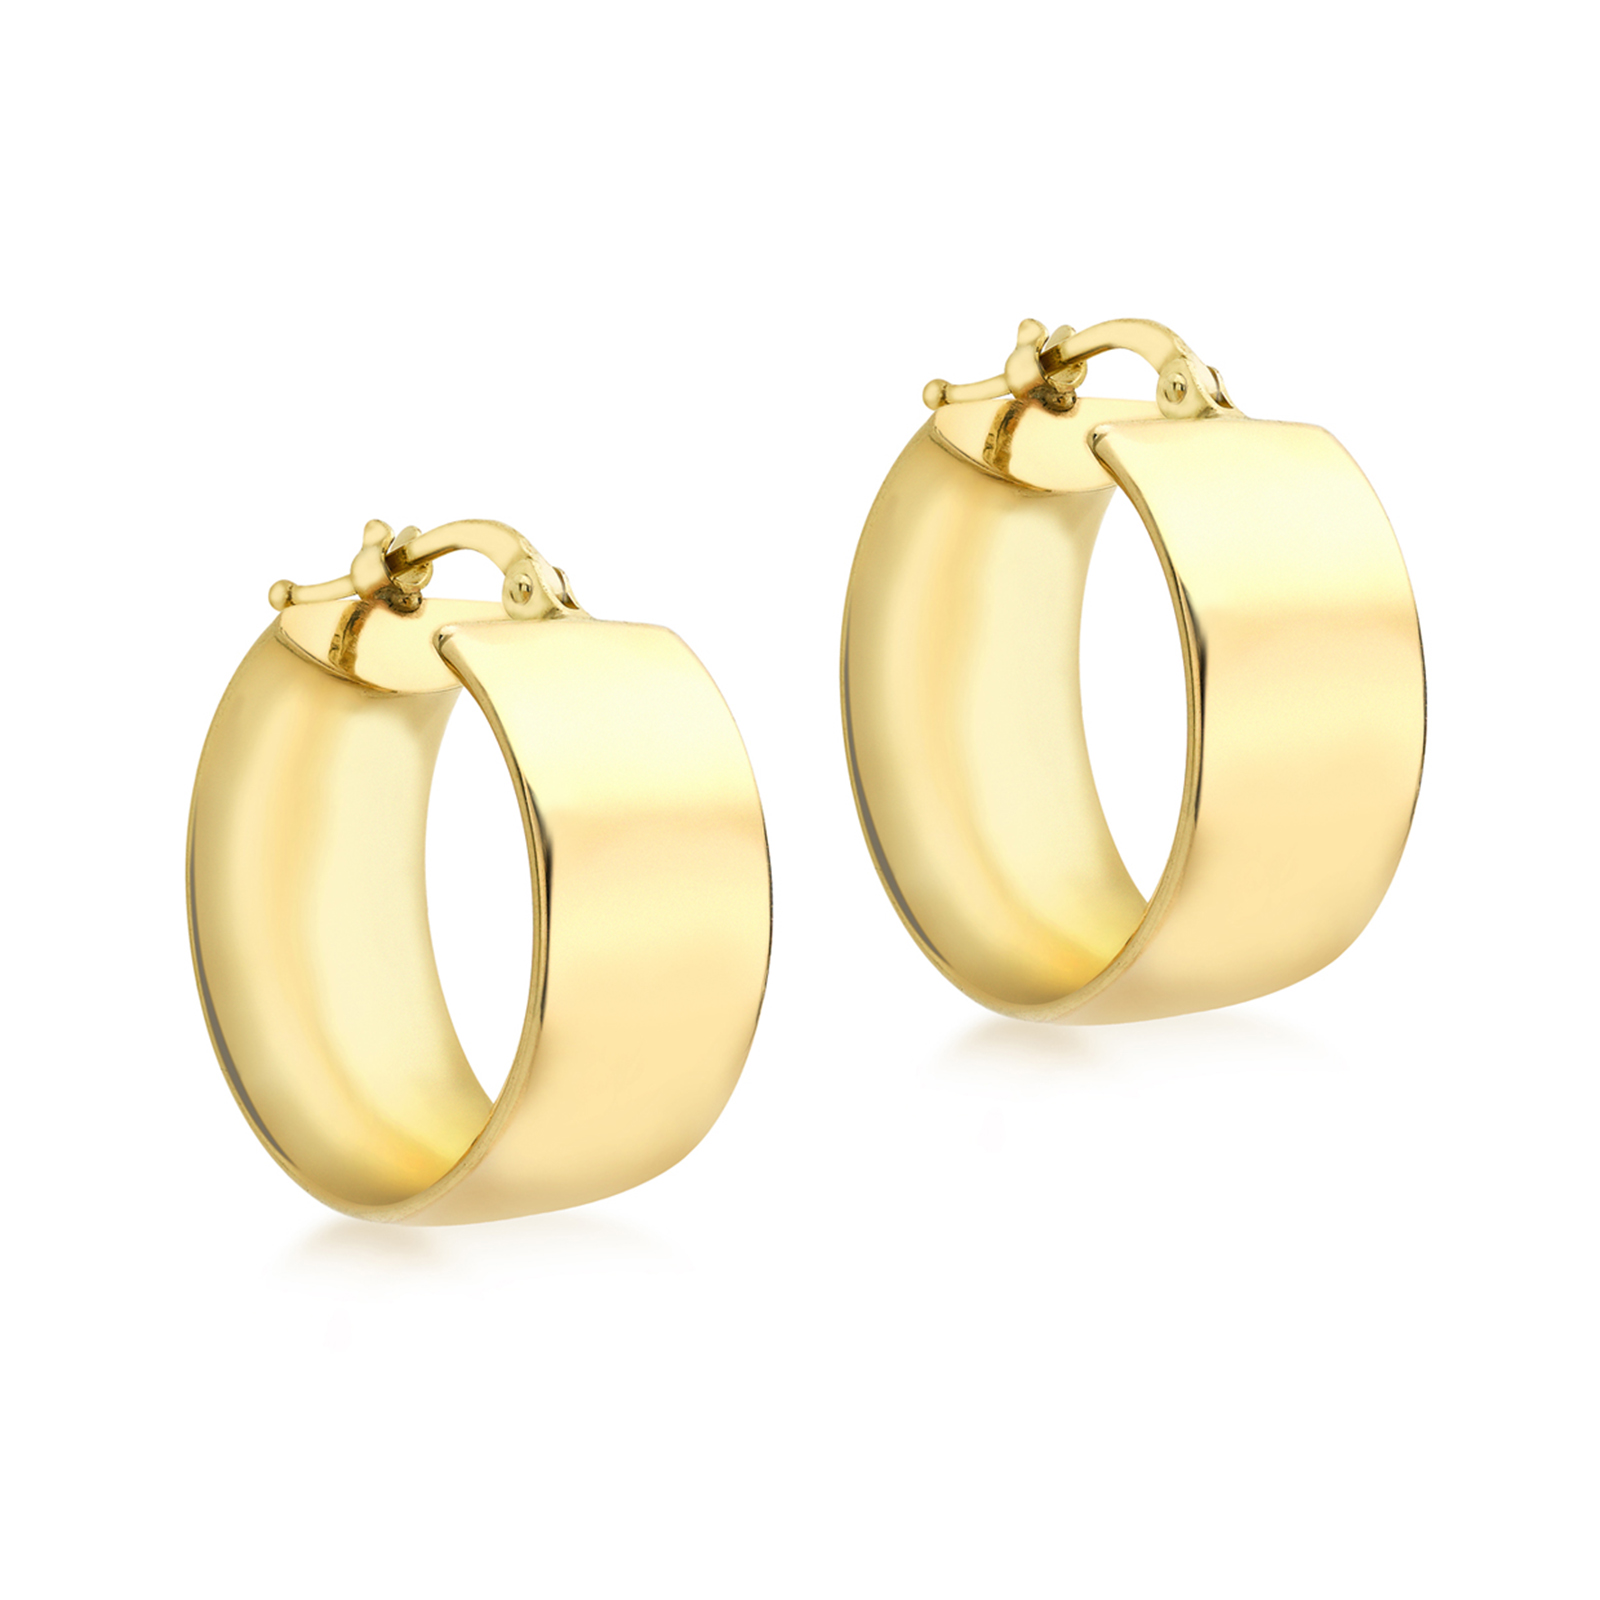 9ct Yellow Gold Medium Broad Creole Hoop Earrings by Goldsmiths